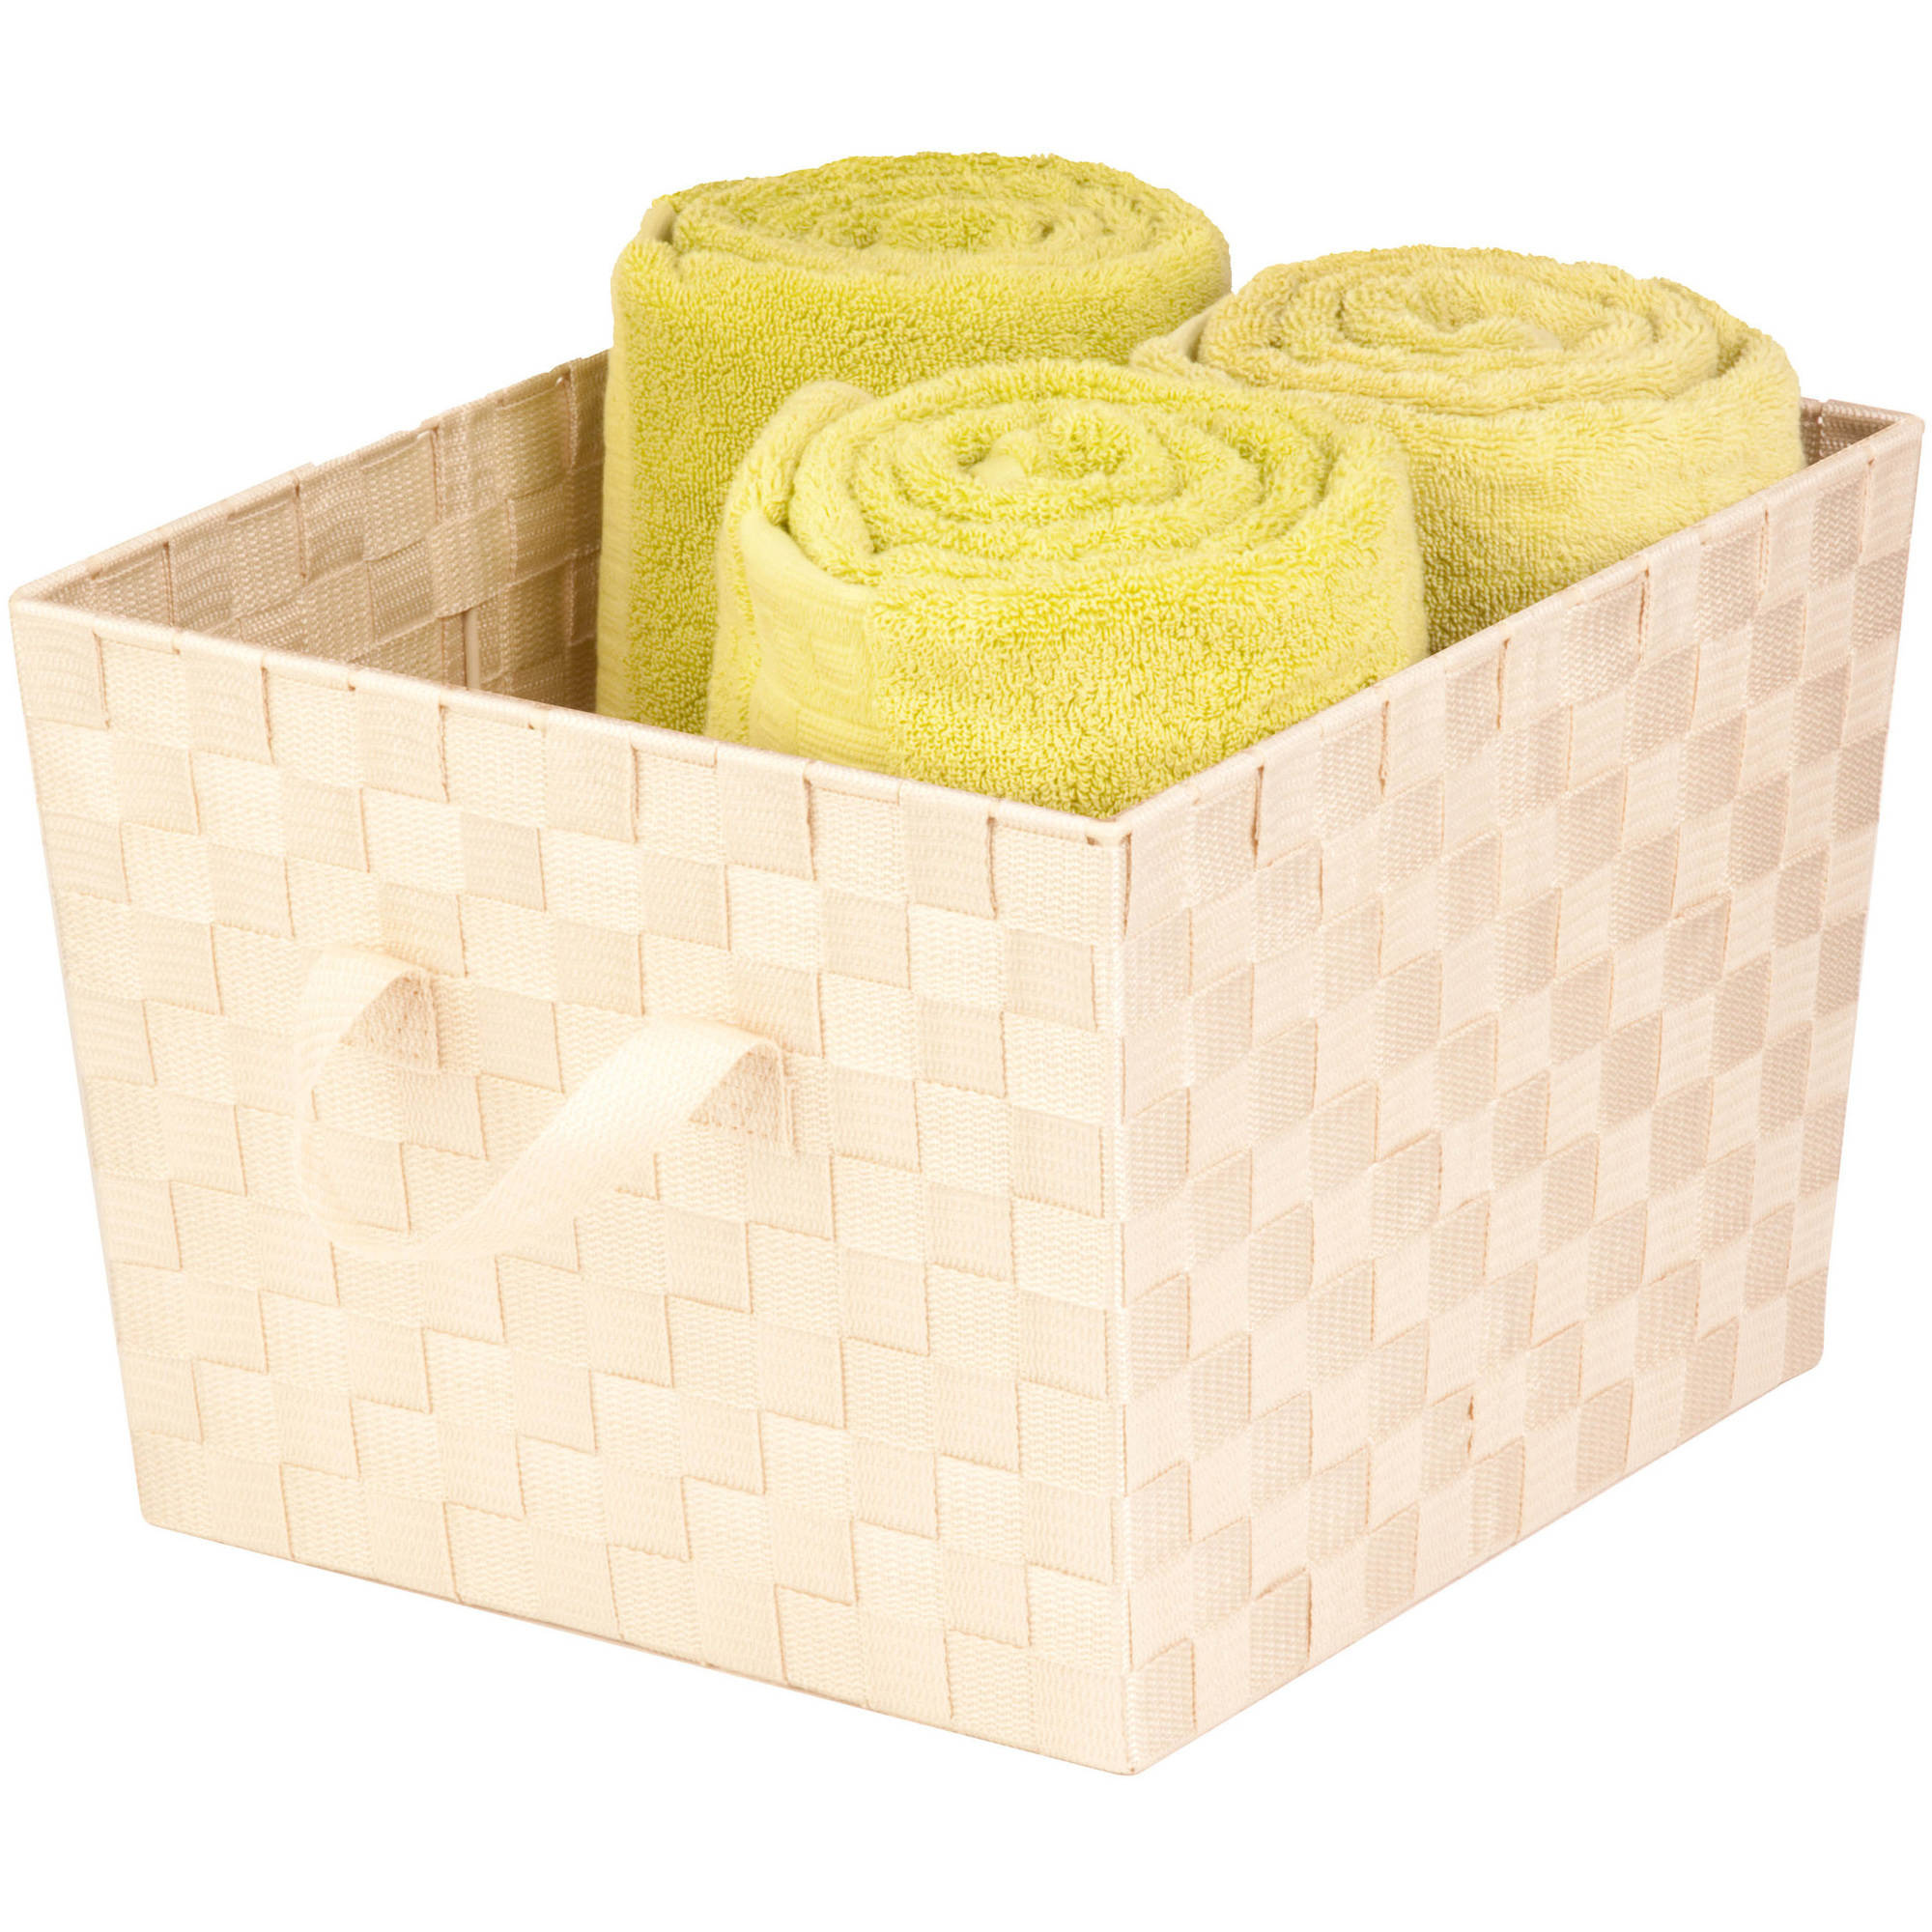 Honey Can Do Large Woven Tote Bin with Straps, Crème